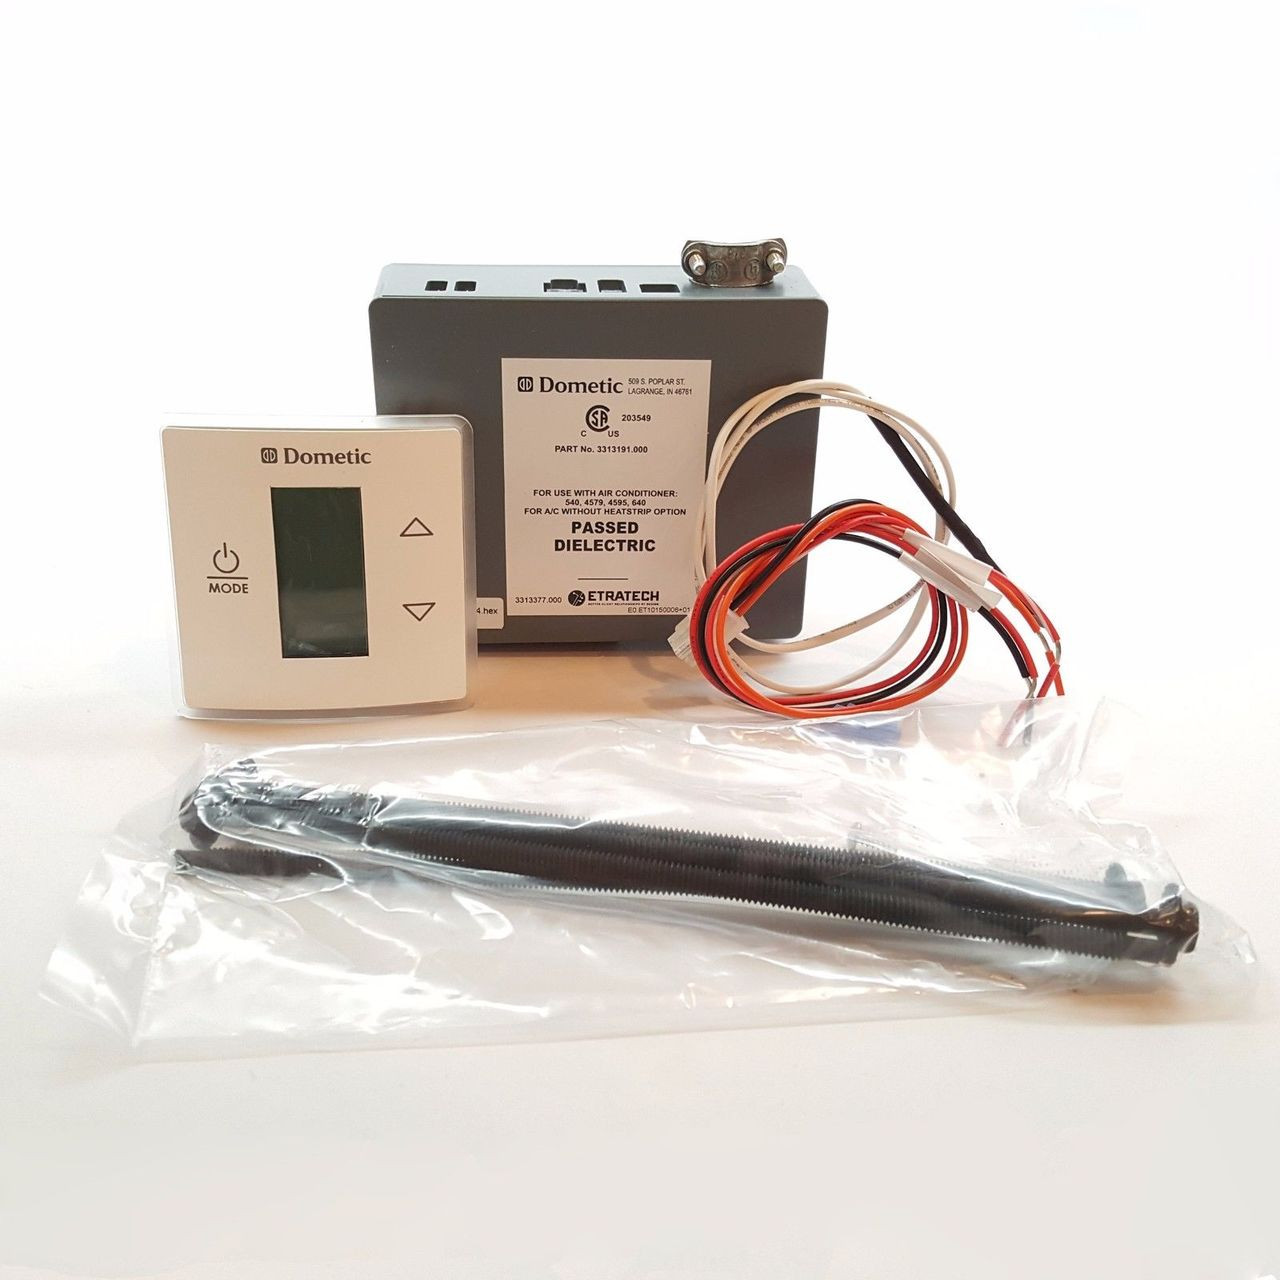 dometic single control kit lcd cool furnace white thermostat 3316230 000  [ 1280 x 1280 Pixel ]